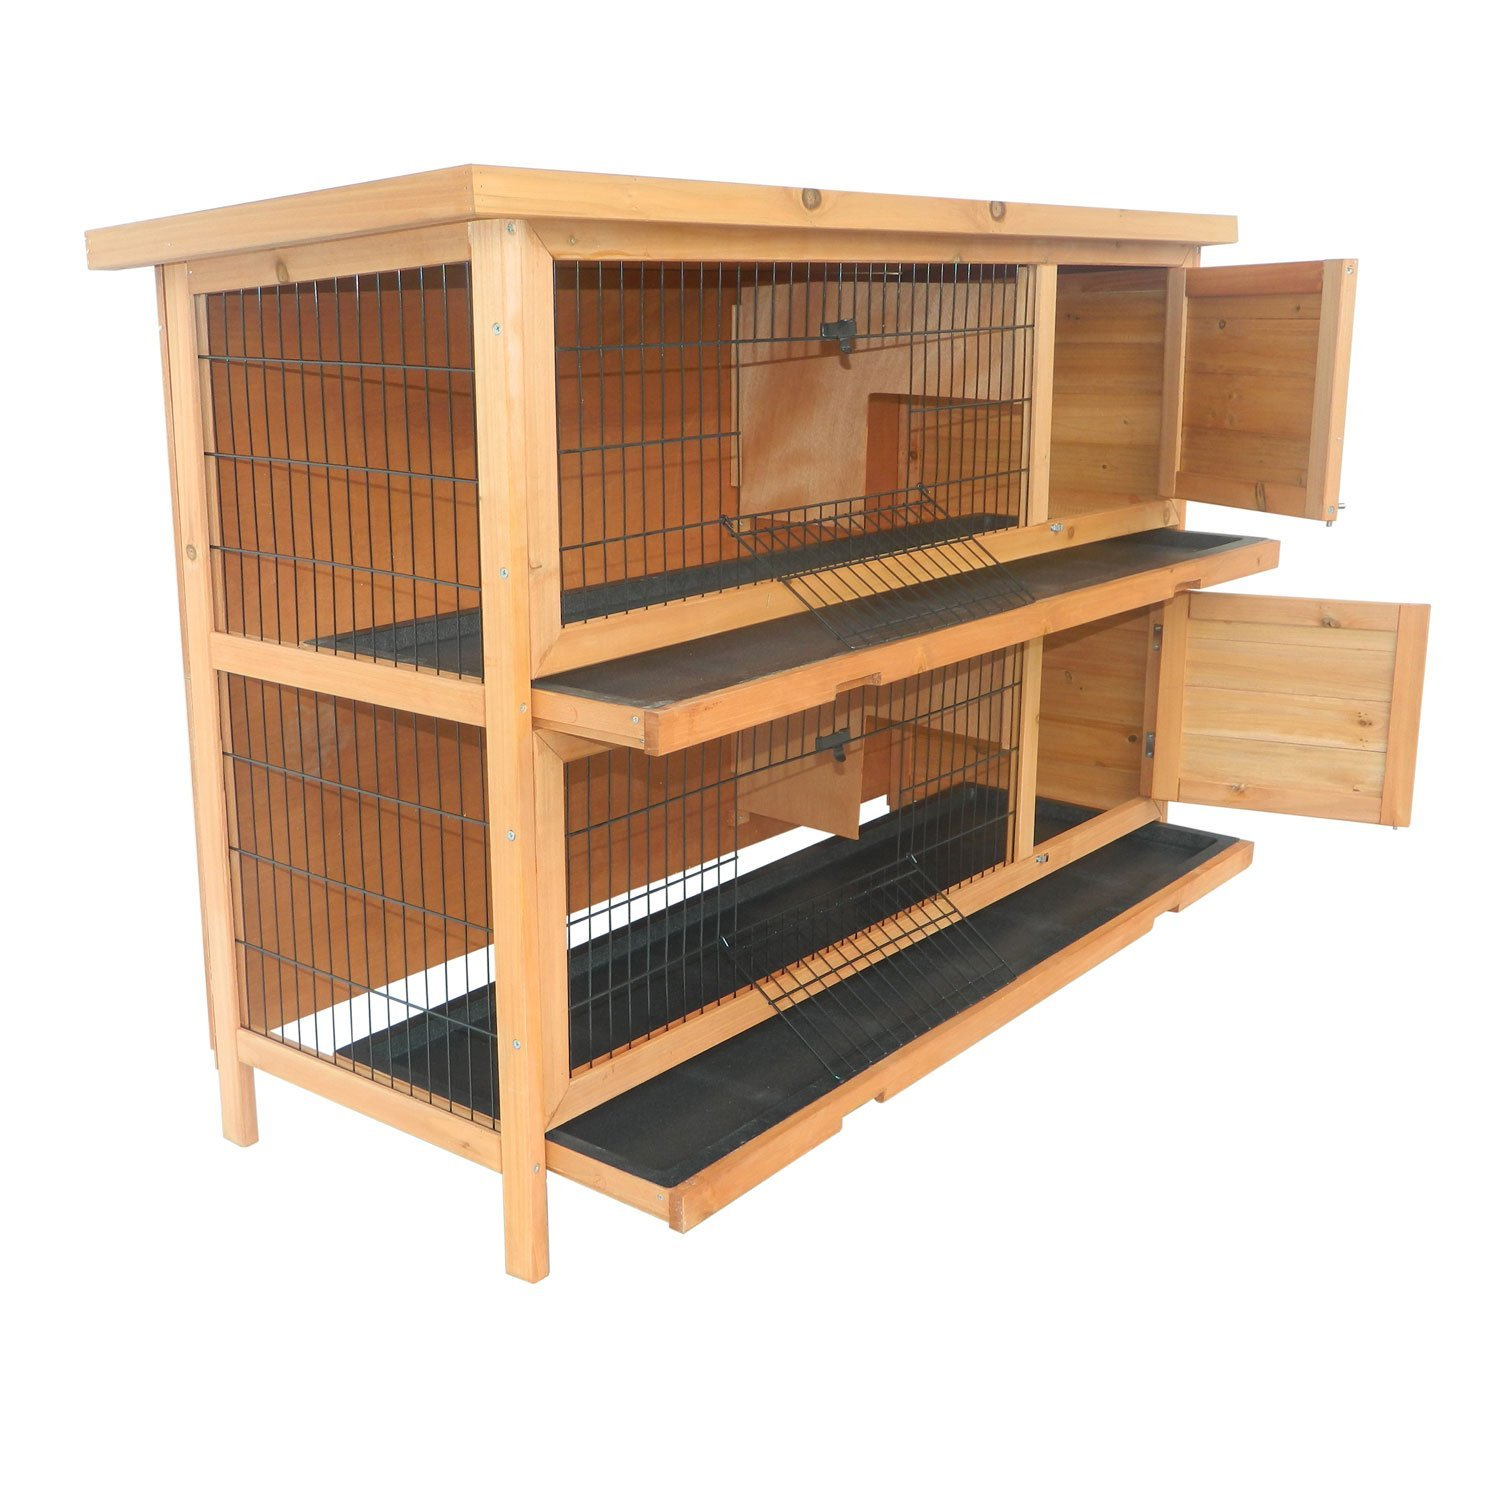 rabbit outdoor with hutches products handmade trixie peaked dp pet small com hutch sale garden amazon for roof